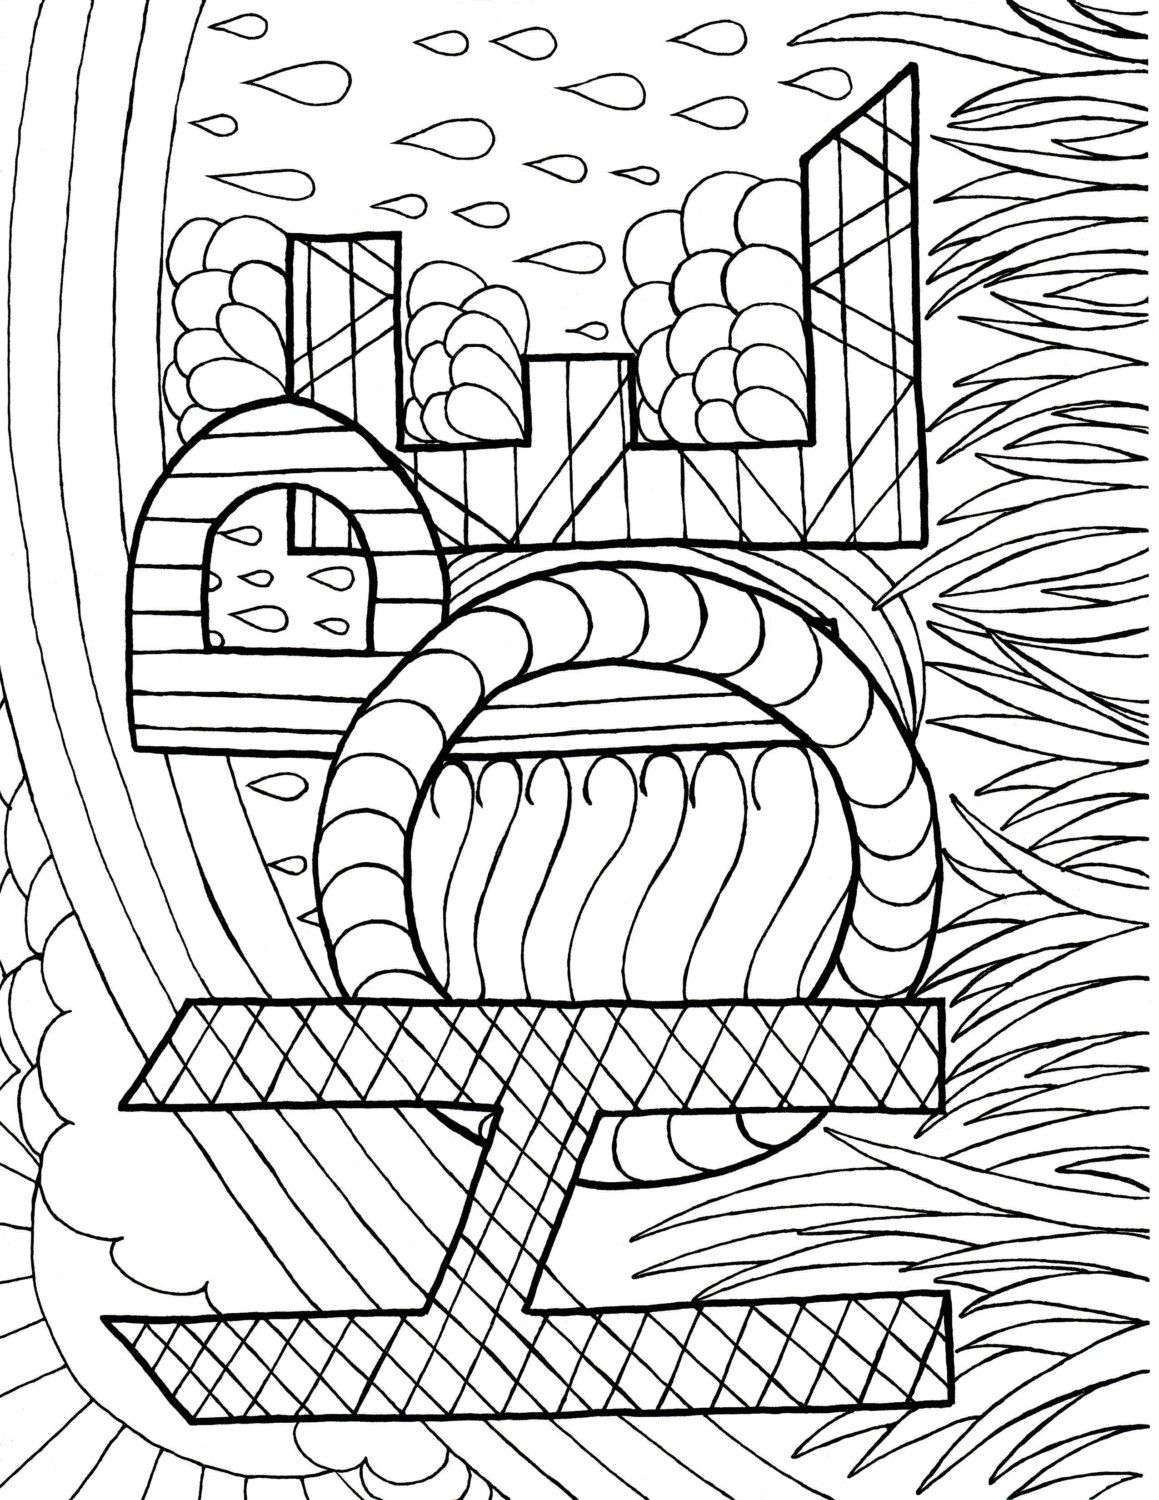 A Coloring Page of Hope | Pinterest